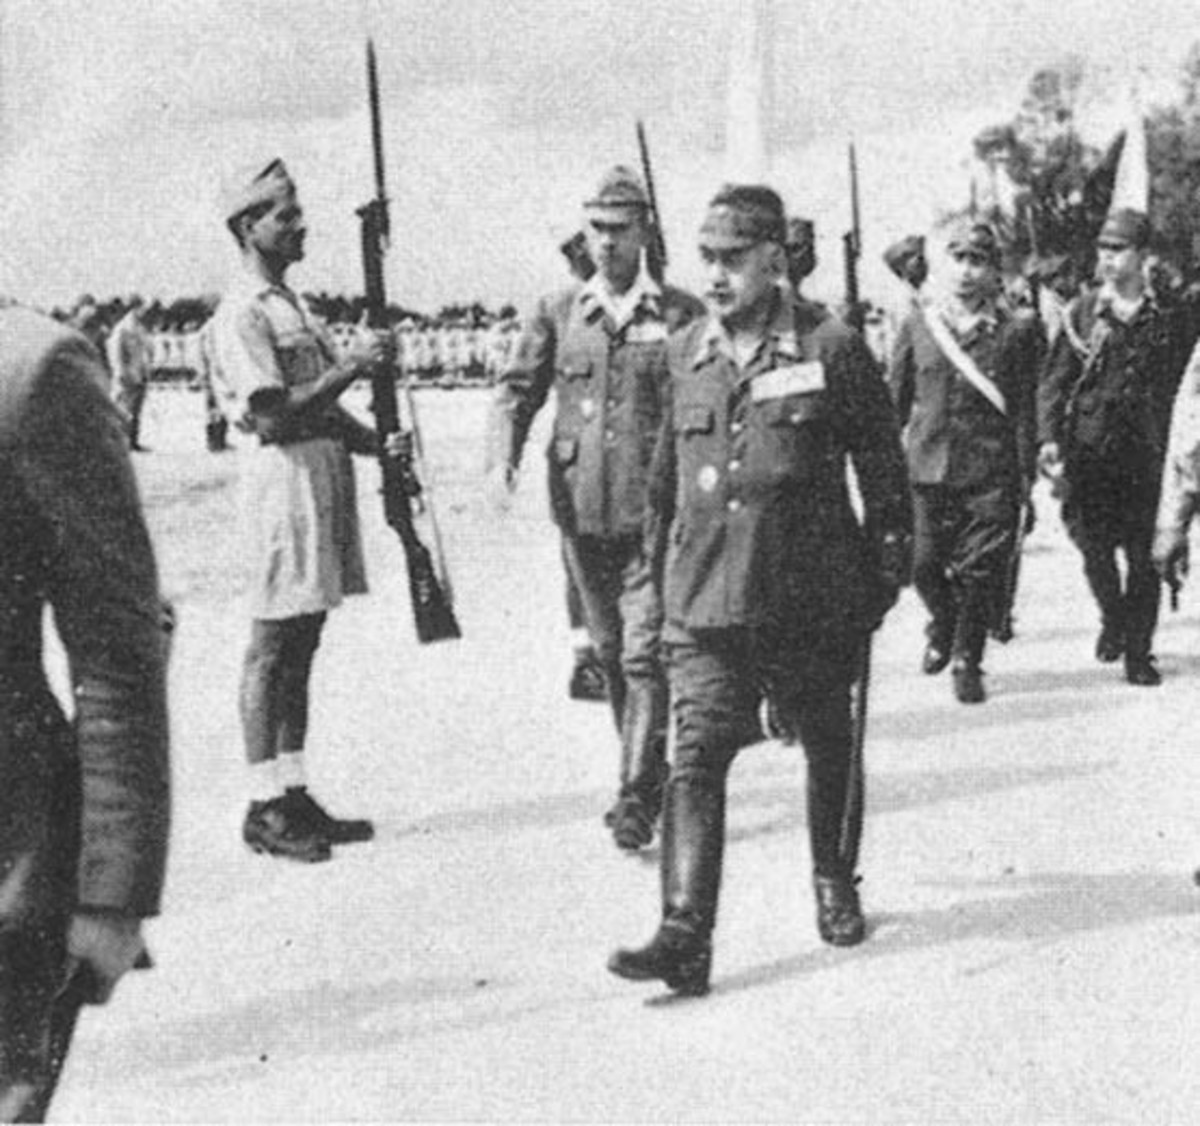 Japanese general inspecting Indian troops in Singapore in 1944